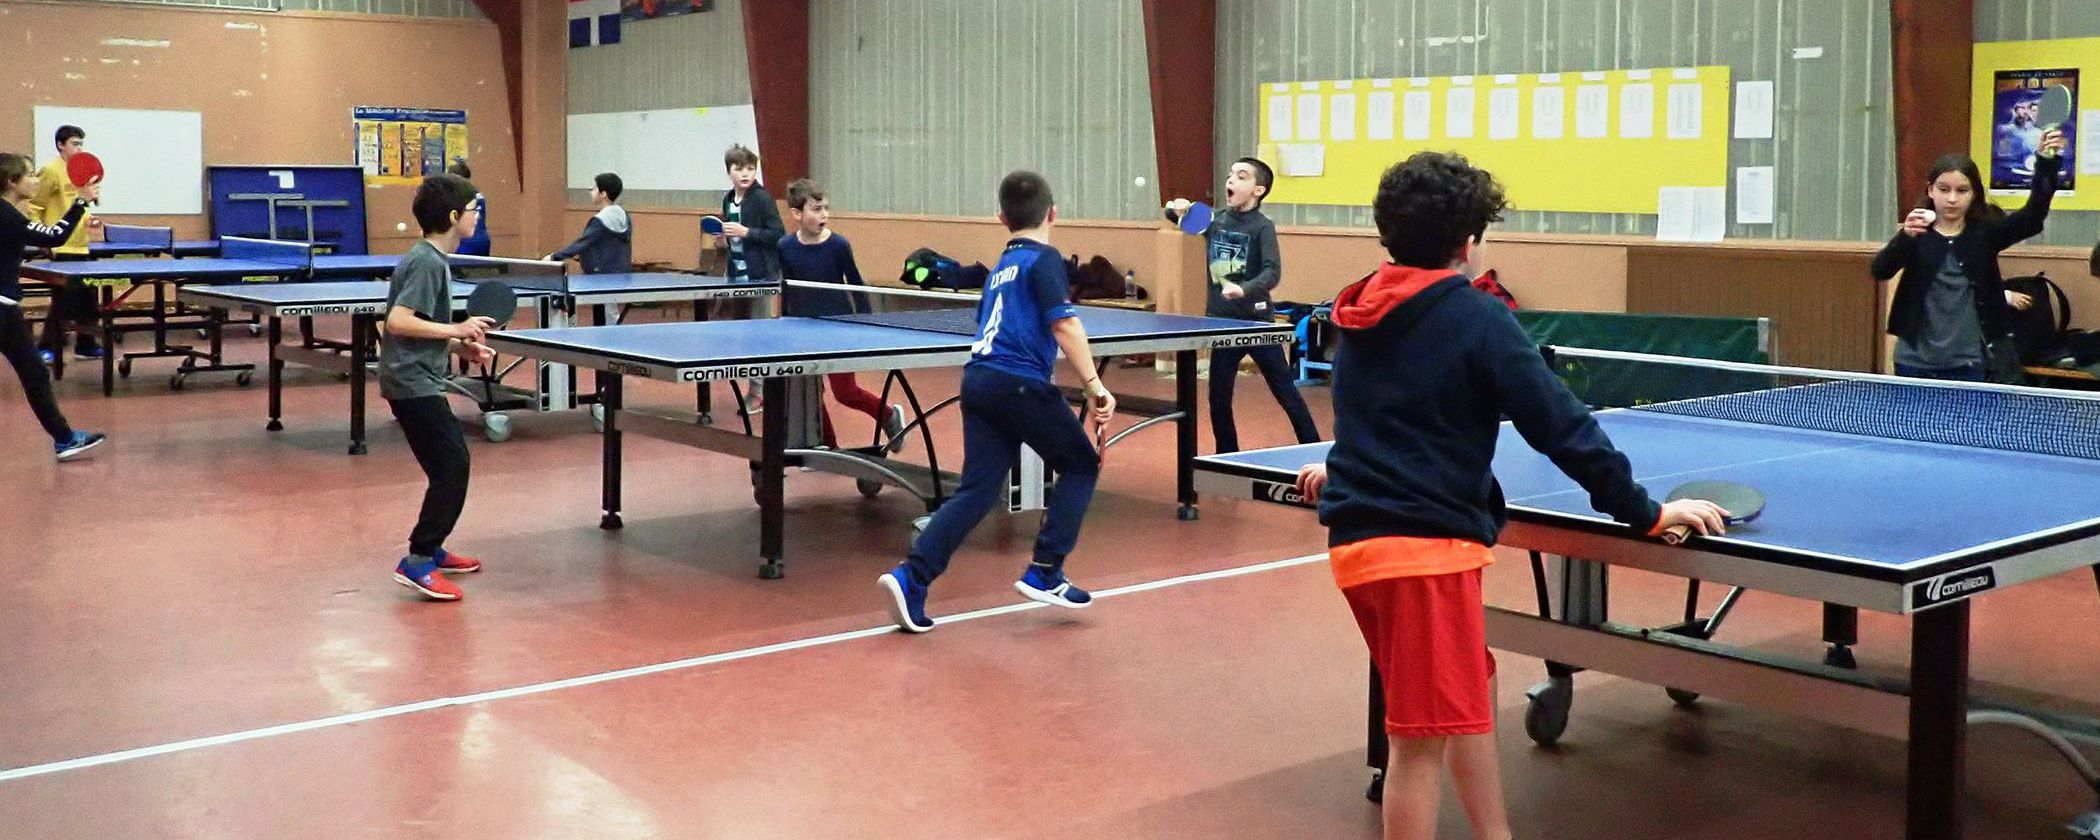 Tennis de table OSEN Saint-Malo